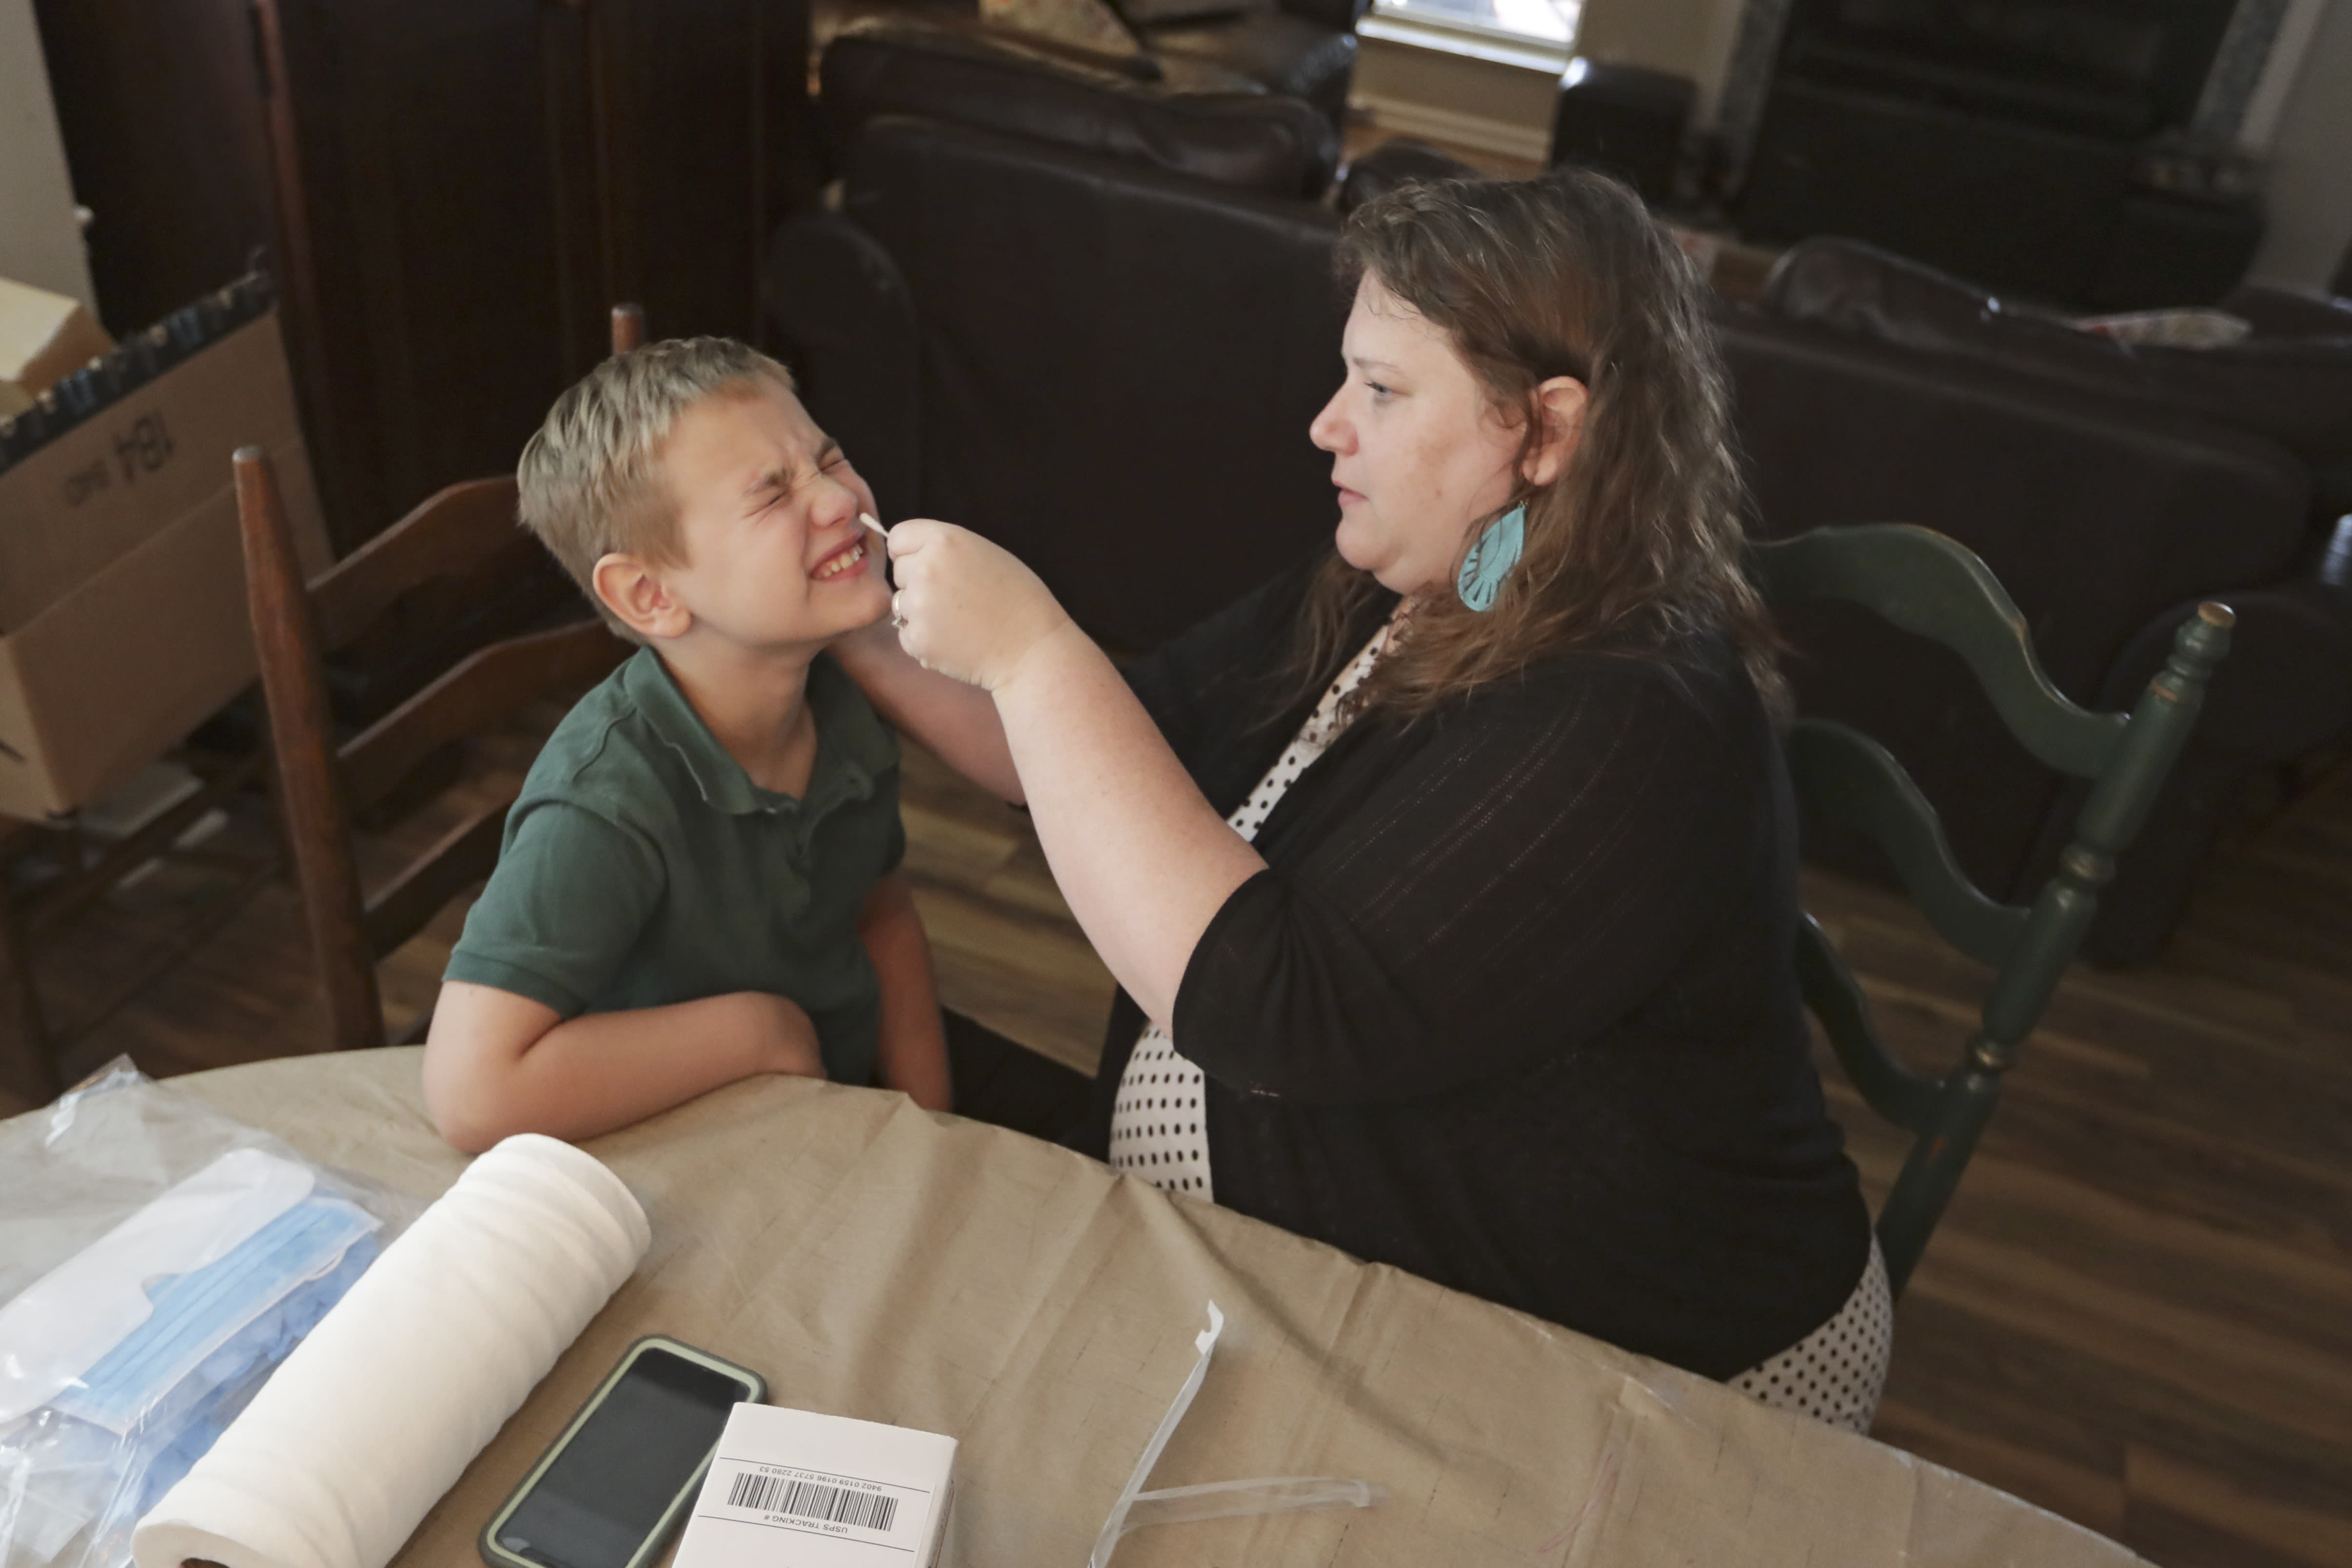 Mendy McNulty swabs the nose of her son, Andrew, 7, Tuesday, July 28, 2020, in their home in Mount Juliet, Tenn. Six thousand U.S. parents and kids are swabbing their noses twice a week to answer some of the most vexing mysteries about the coronavirus. The answers could help determine the safety of in-class education during the pandemic. (AP Photo/Mark Humphrey)